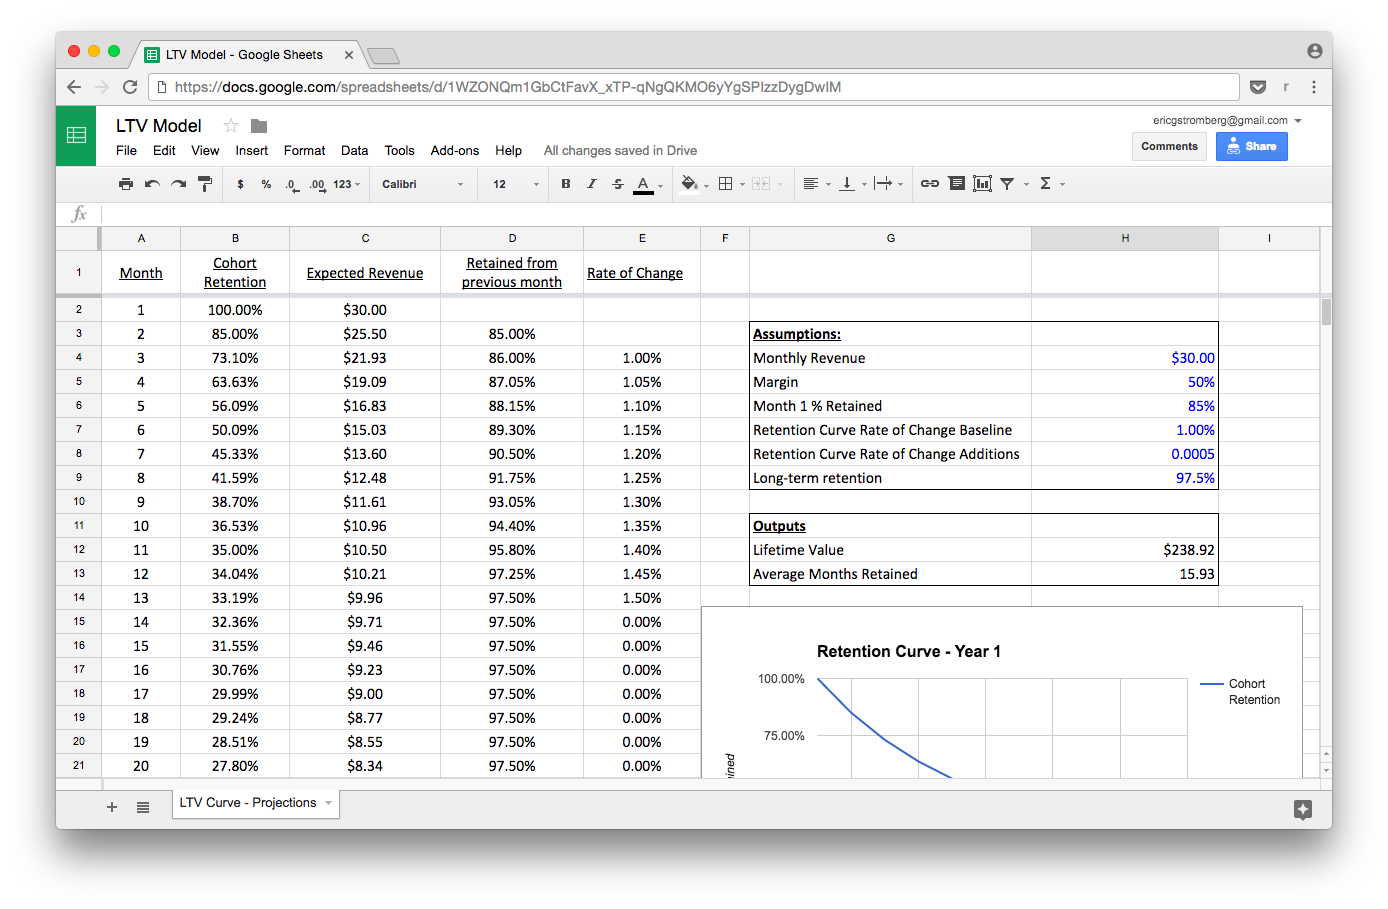 A Spreadsheet For Calculating Subscription Lifetime Value